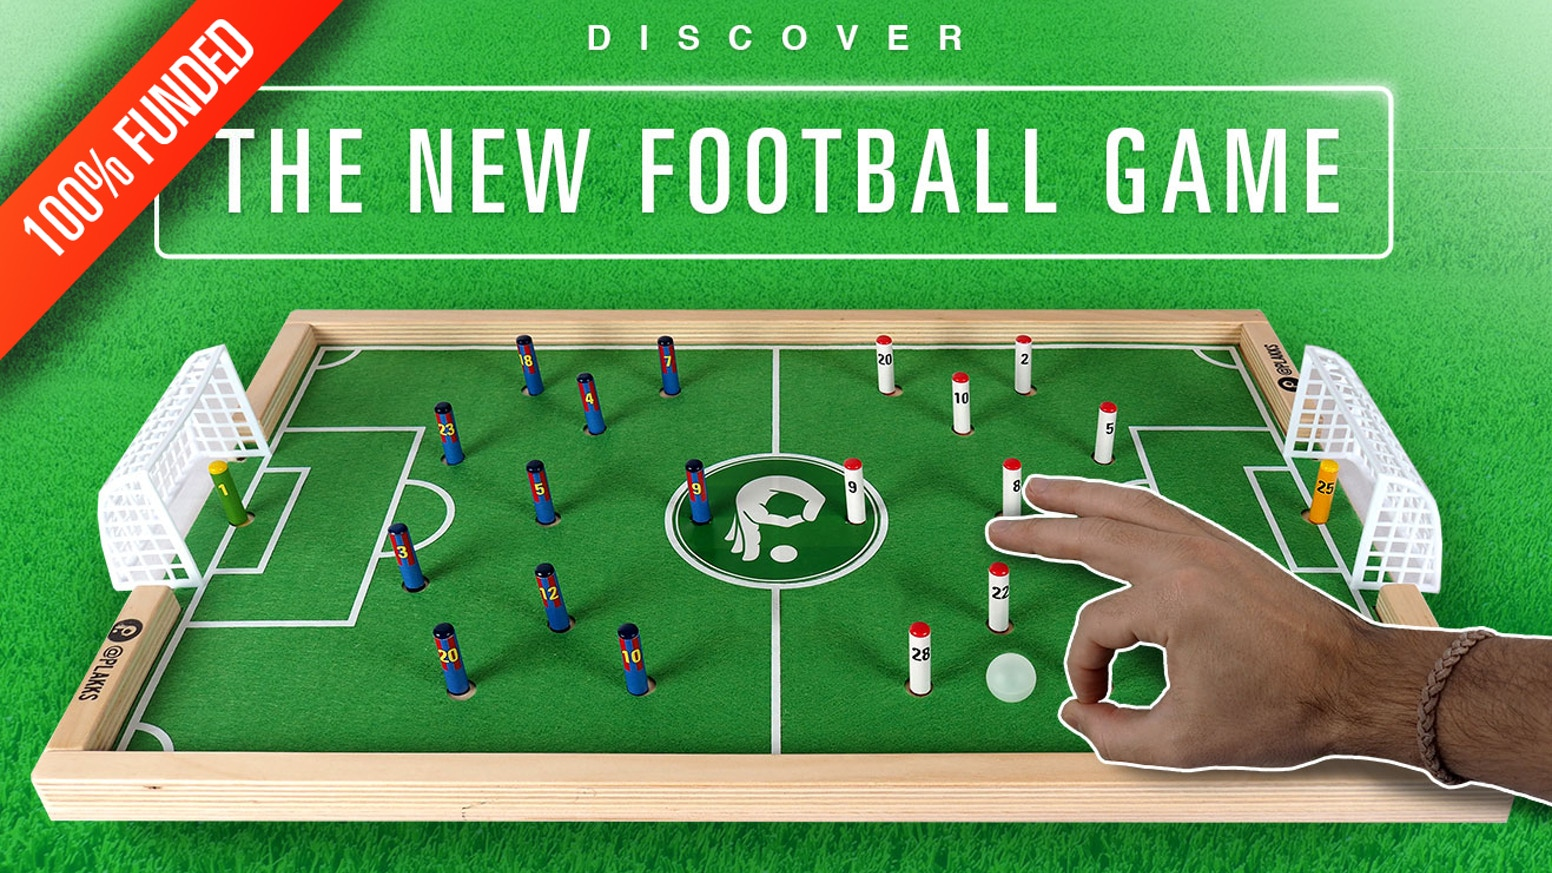 A new football board game to play everywhere with everyone which aim is to score goals by kicking the ball with your finger